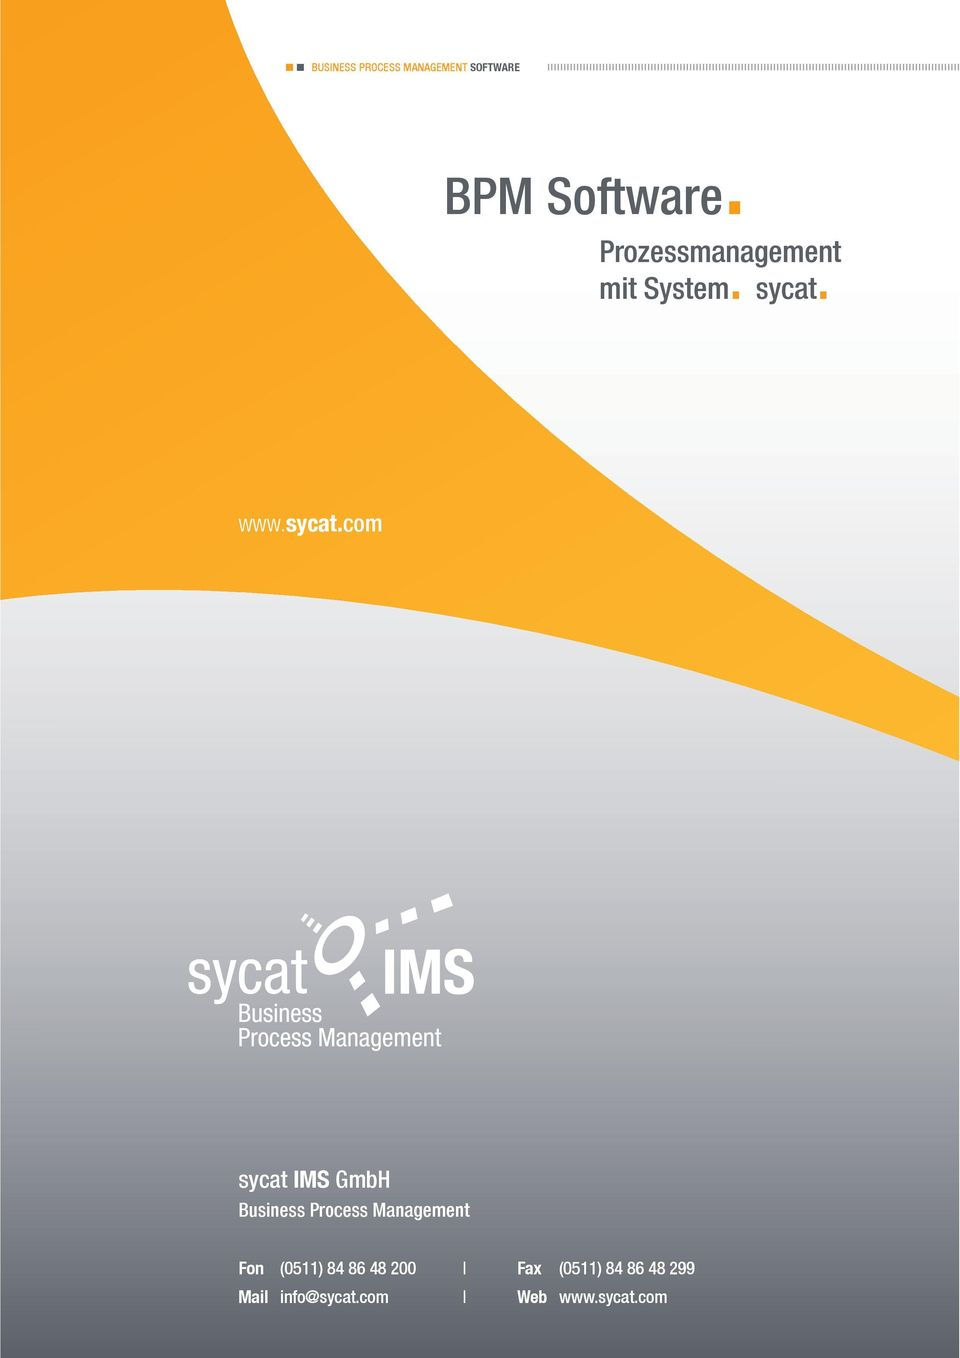 sycat IMS GmbH Business Process